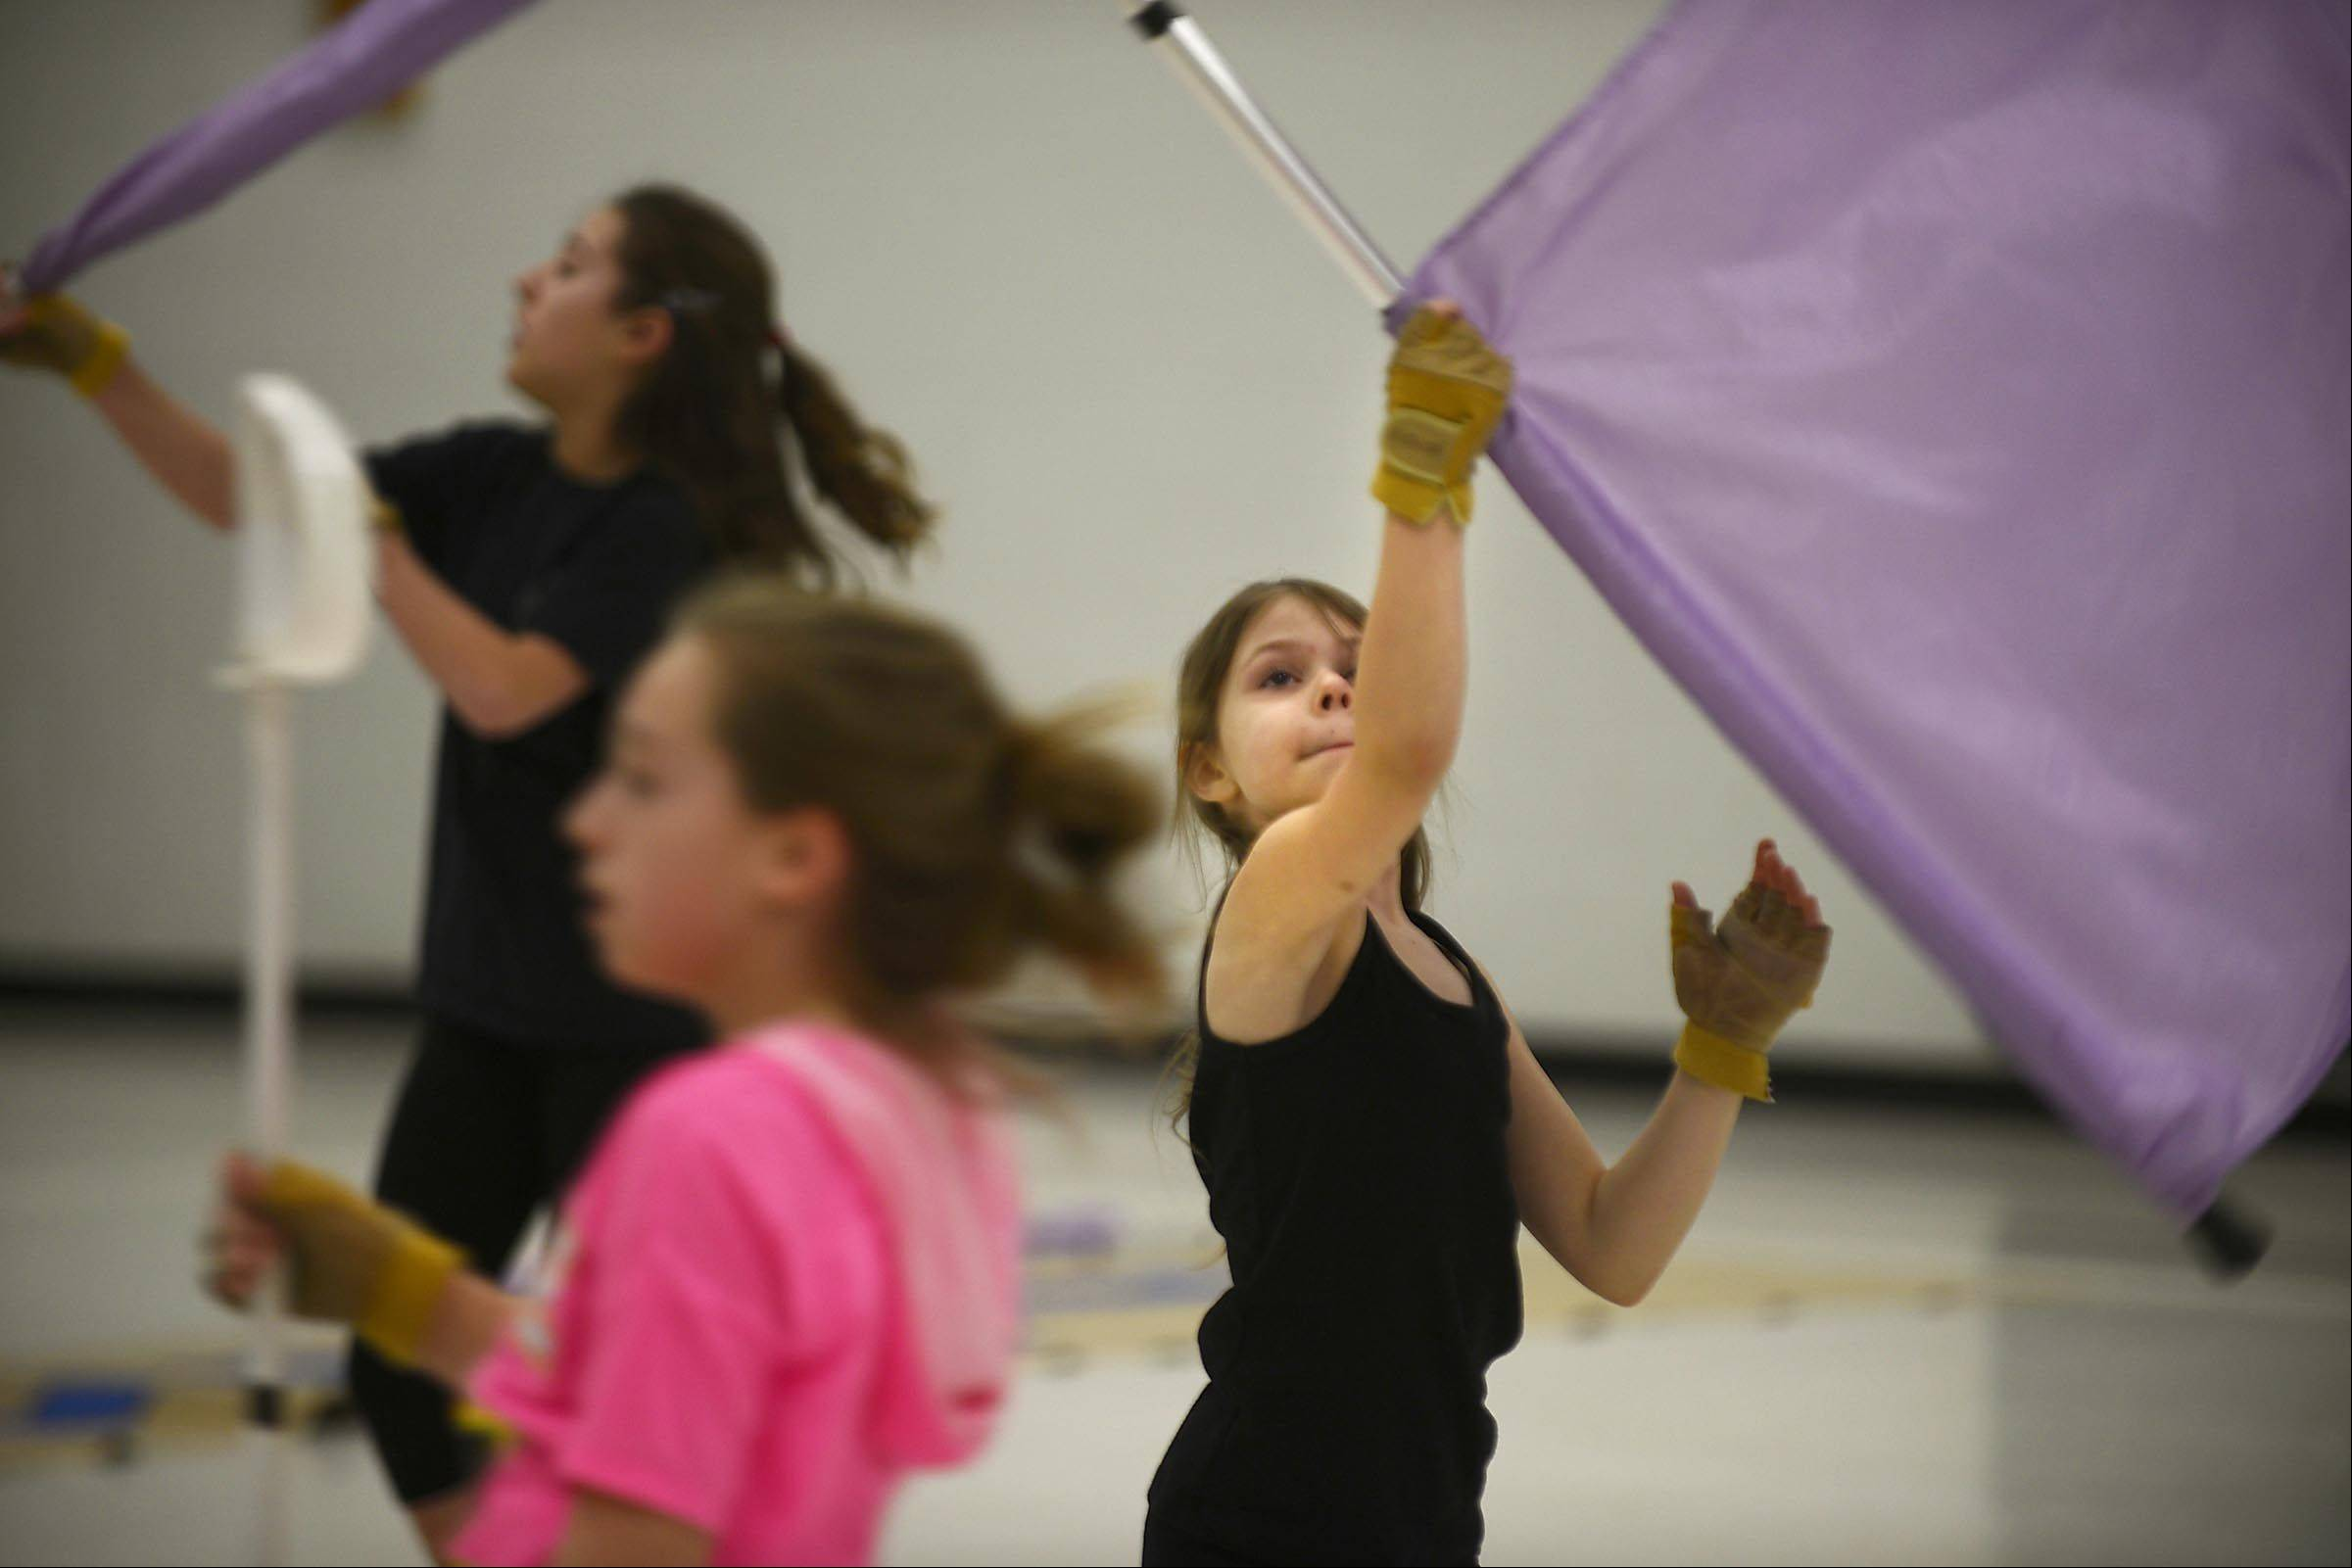 The Allegiance Youth Color Guard Cadets, made up of kids ages 6 to 13, practice their 3-minute routine at Sunny Hill School in Carpentersville.